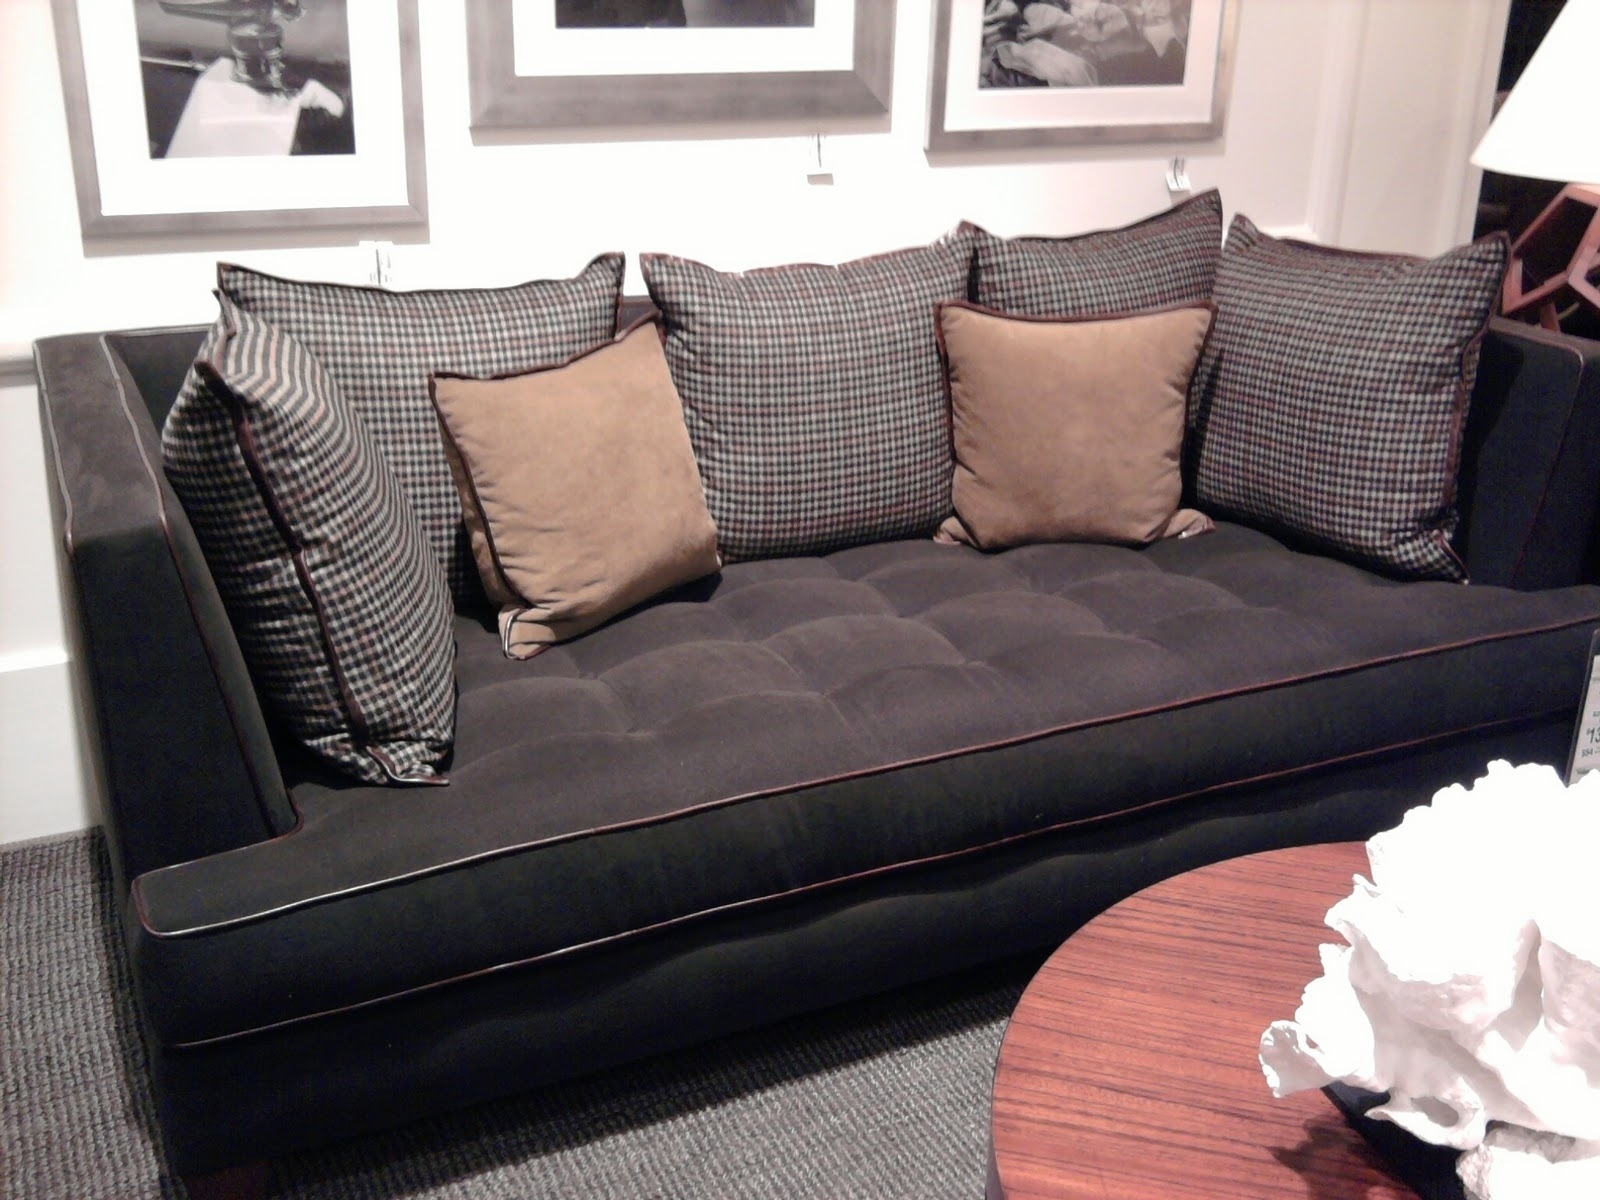 Couch: Concepts Deep Cushion Couch Extra Deep Couches, Cushy Couches for Deep Cushion Sofas (Image 3 of 10)